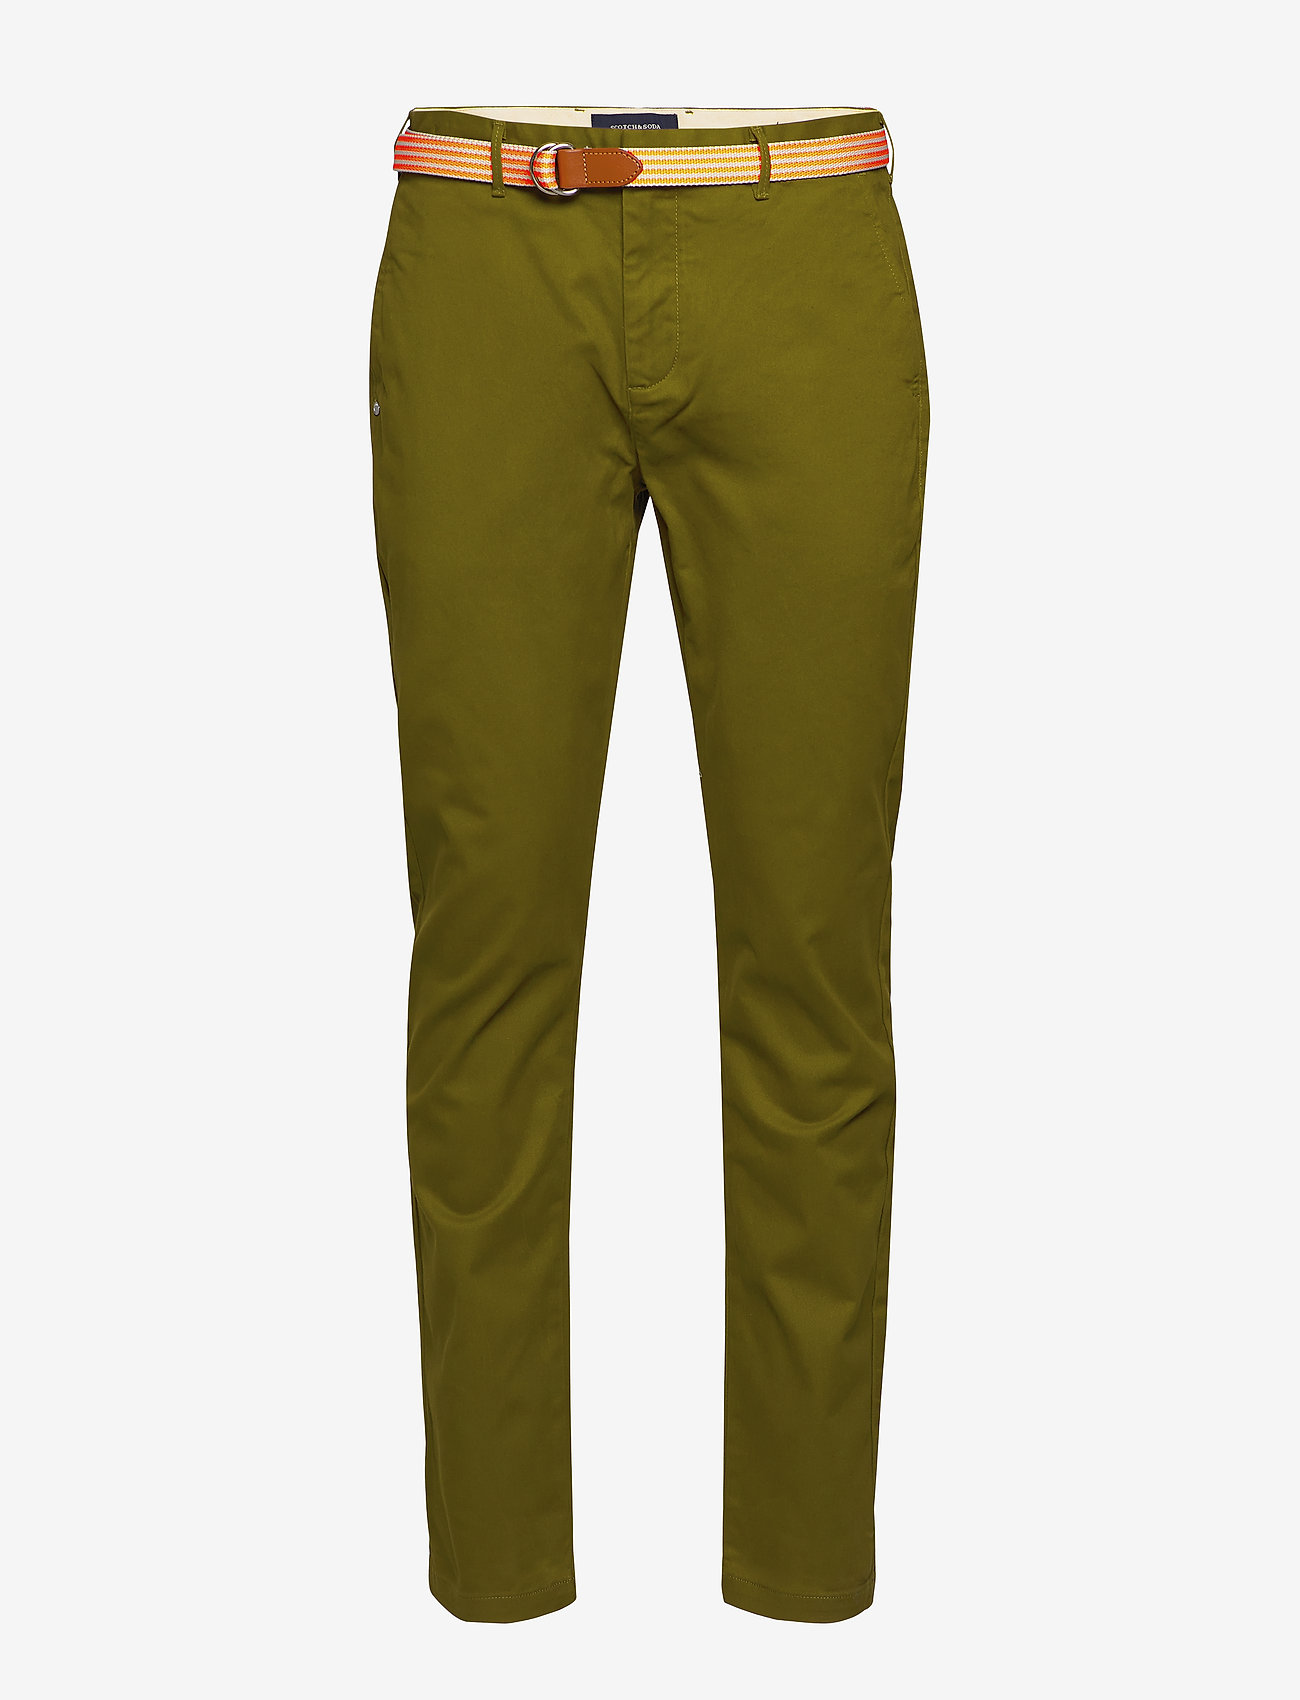 Scotch & Soda - Ams Blauw stretch Stuart chino with belt - chinos - military green - 0